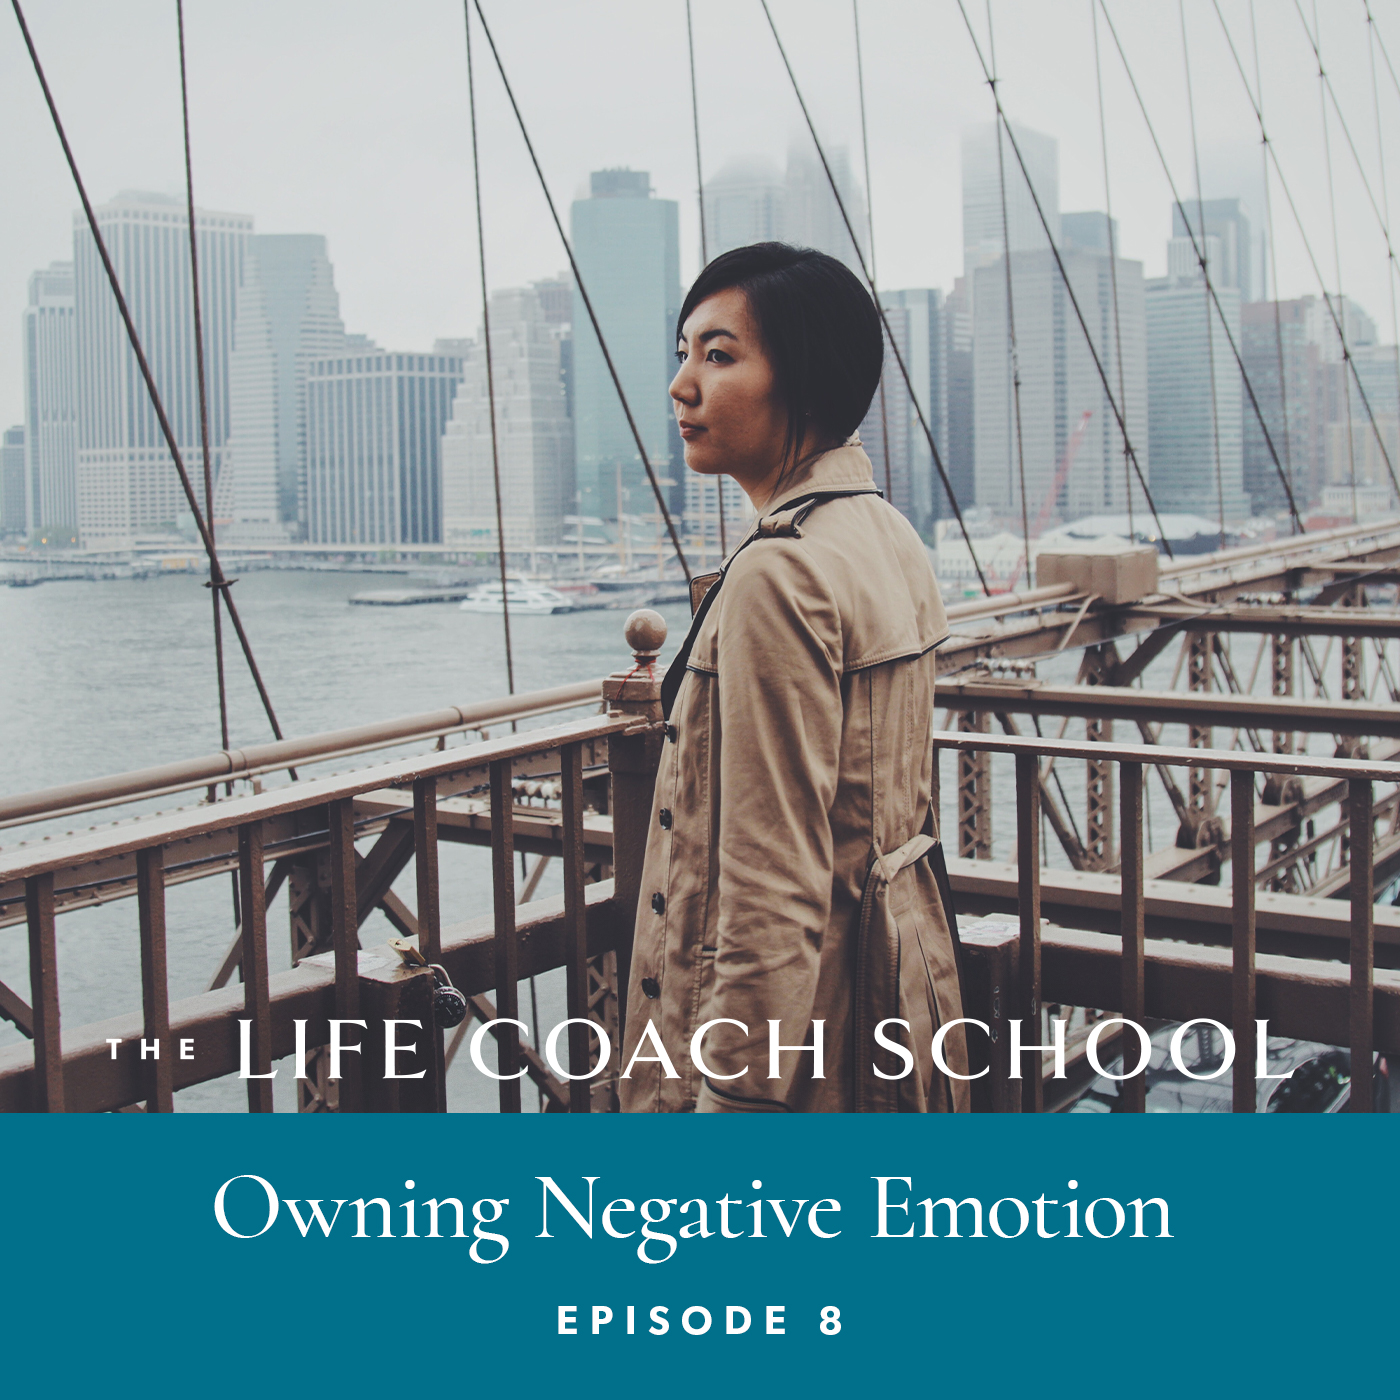 The Life Coach School Podcast with Brooke Castillo | Episode 8 | Owning Negative Emotions